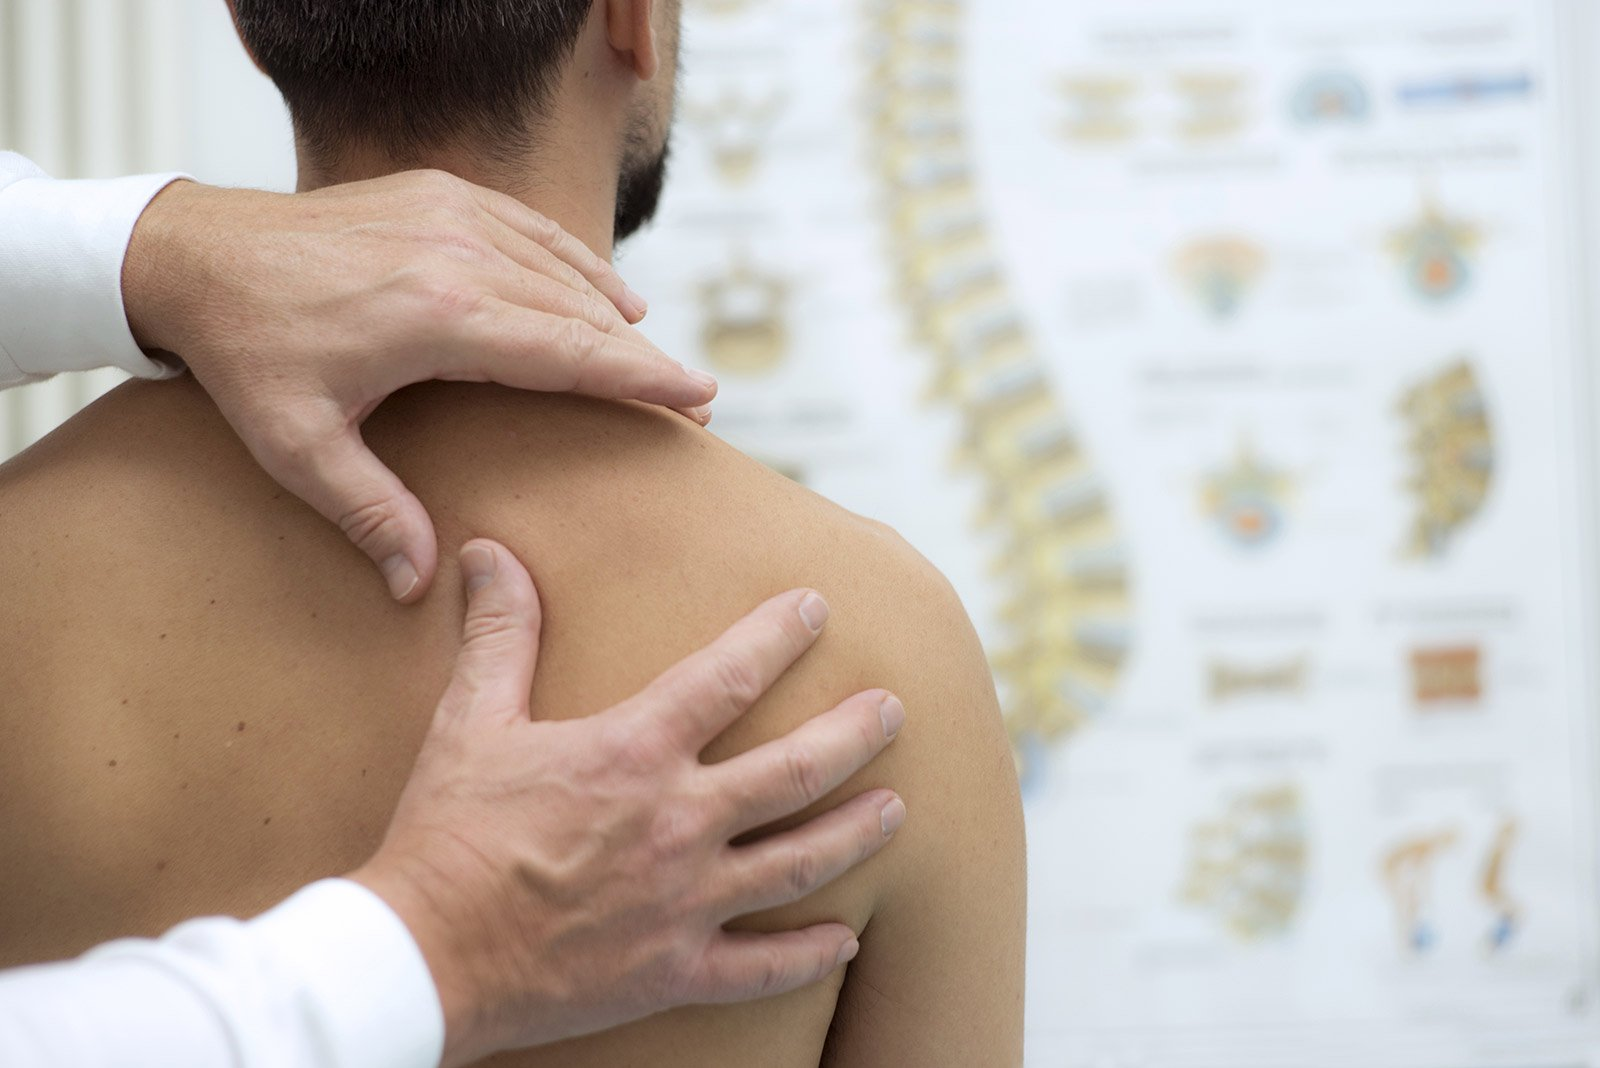 Chiropractor performing assessment for back pain